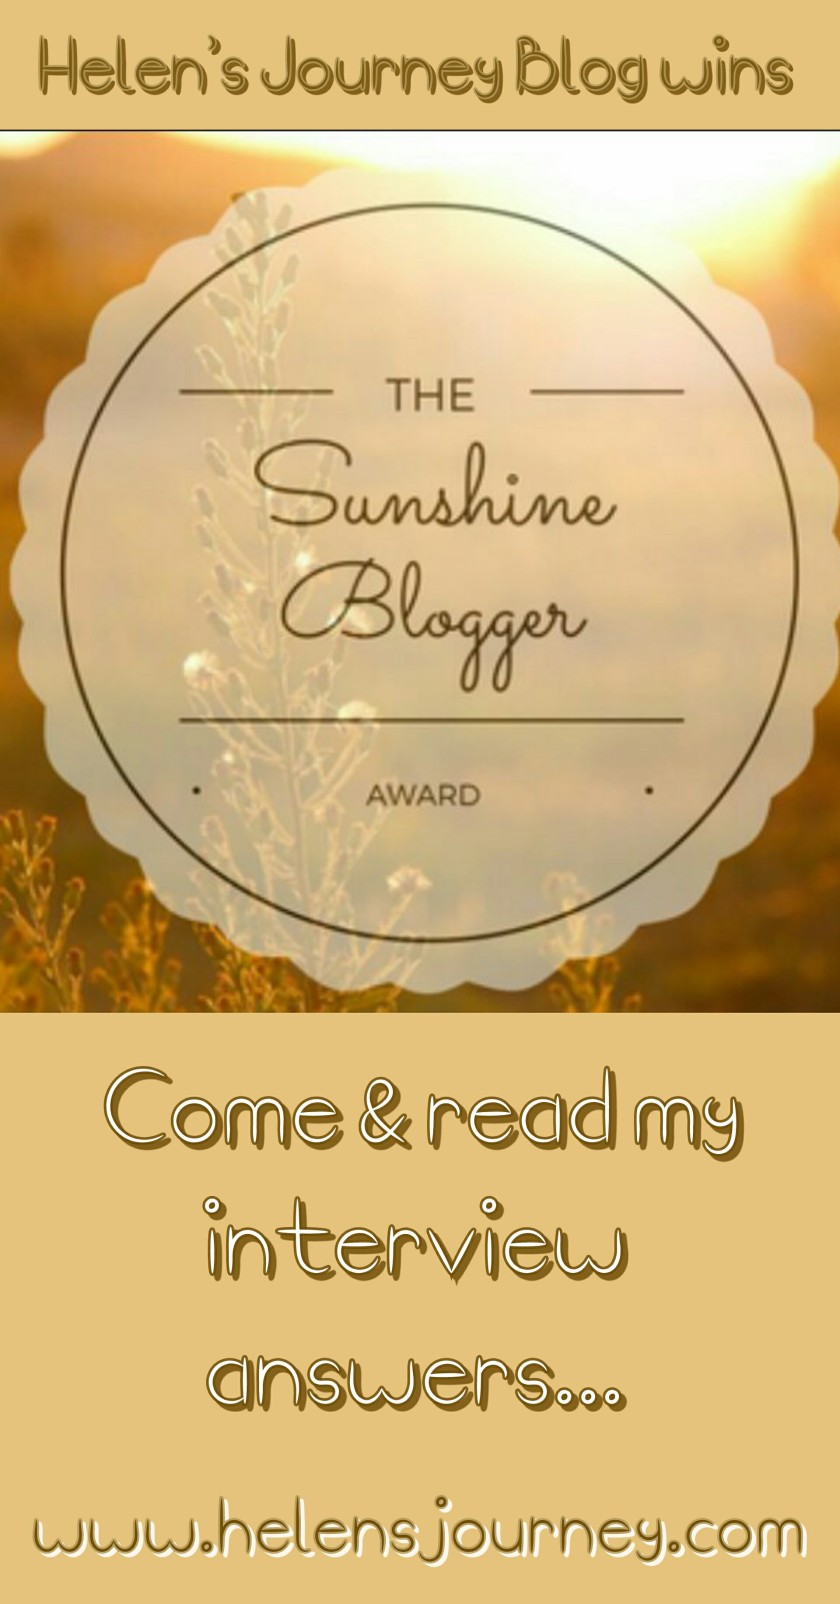 helens journey blog wins sunshine blogger award. Award logo & invite to read interview answers